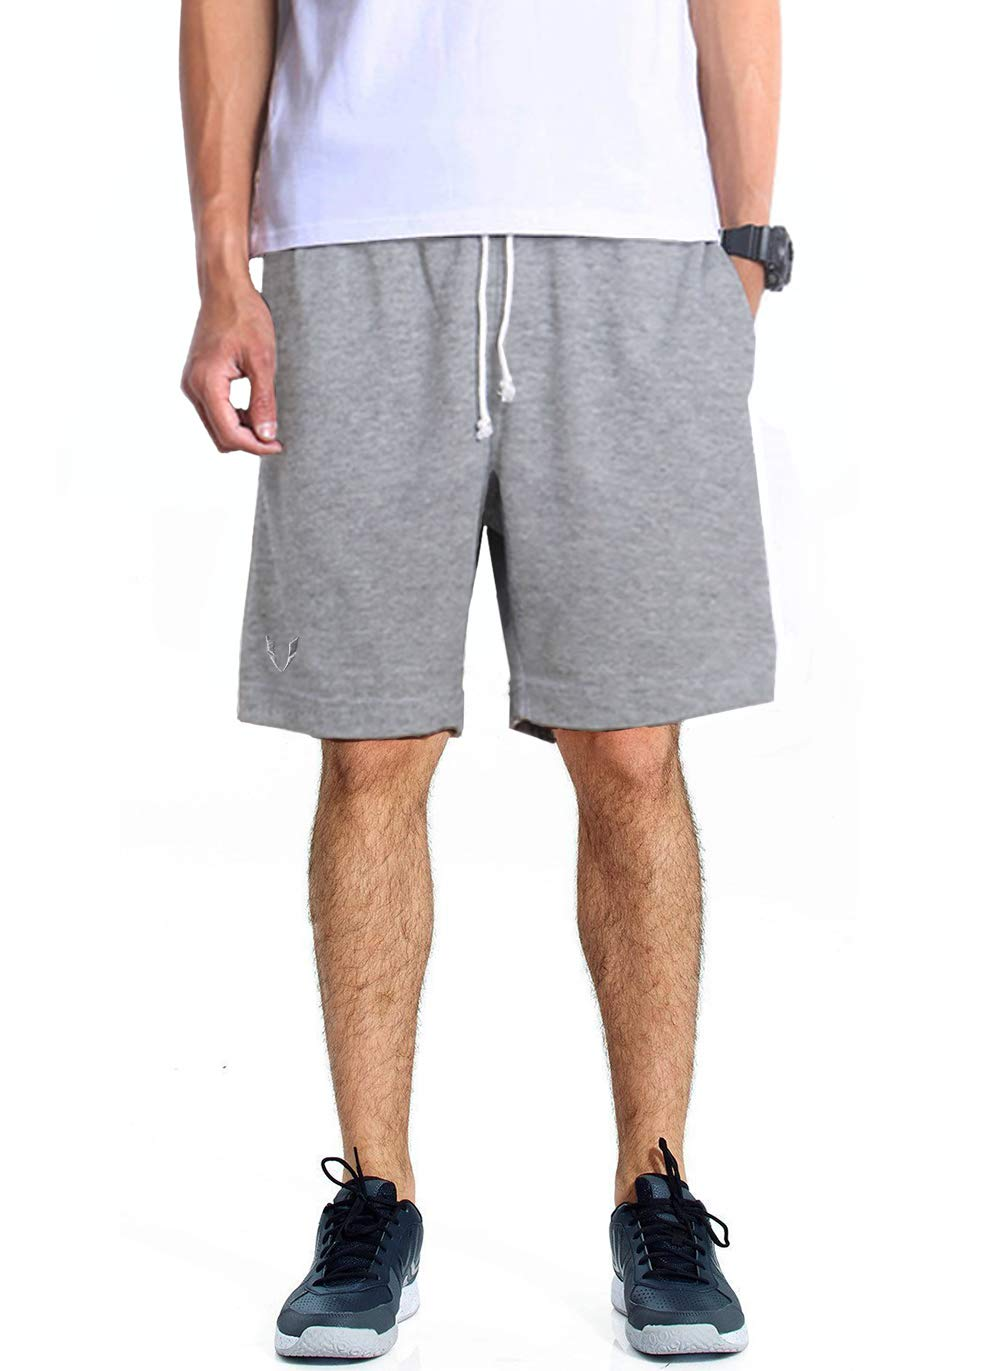 53edf11e43cb70 FIRM ABS Men's Casual Classic Fit Cotton Elastic Jogger Gym Drawstring  Shorts S Gray